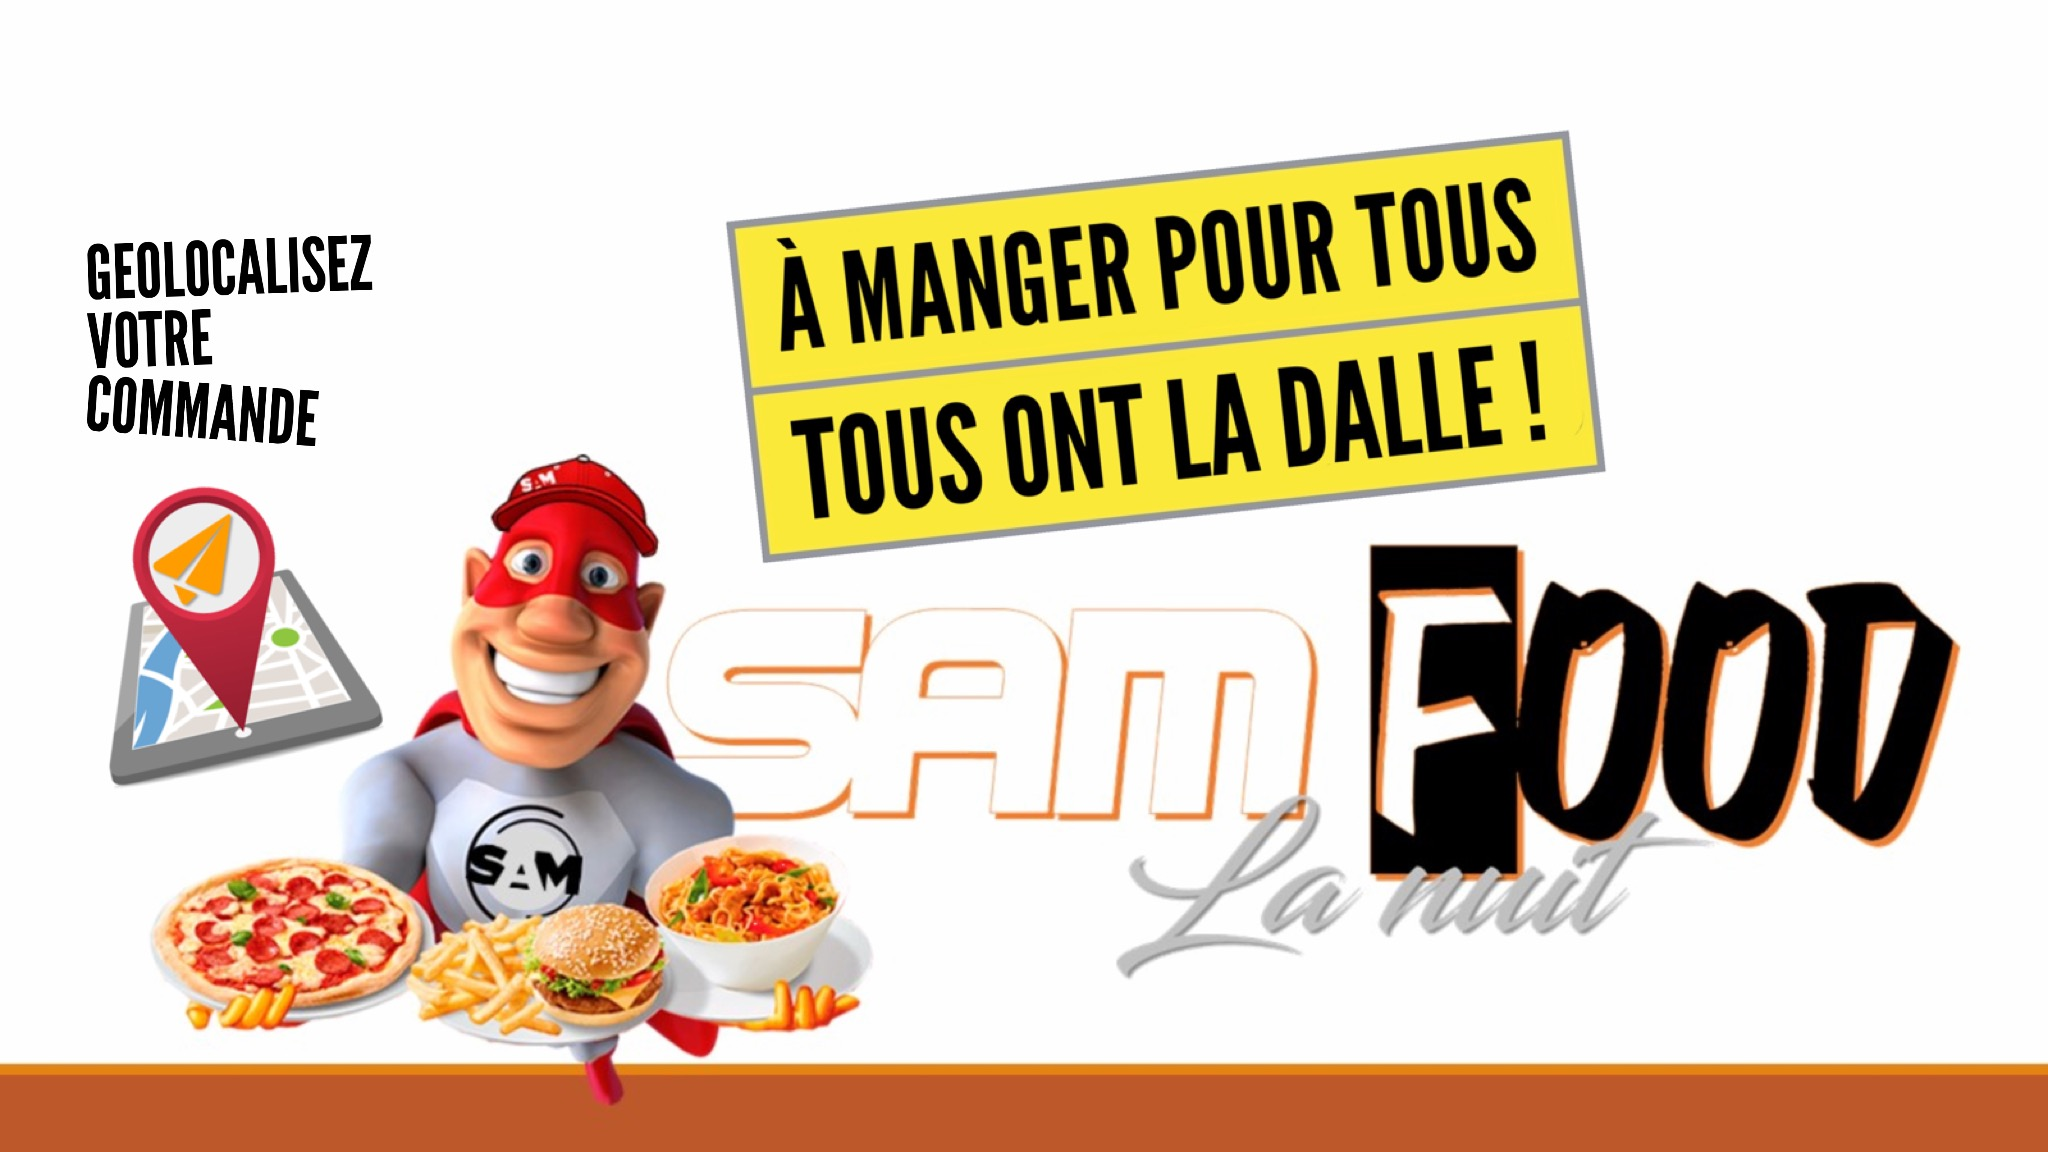 Sam Food la nuit